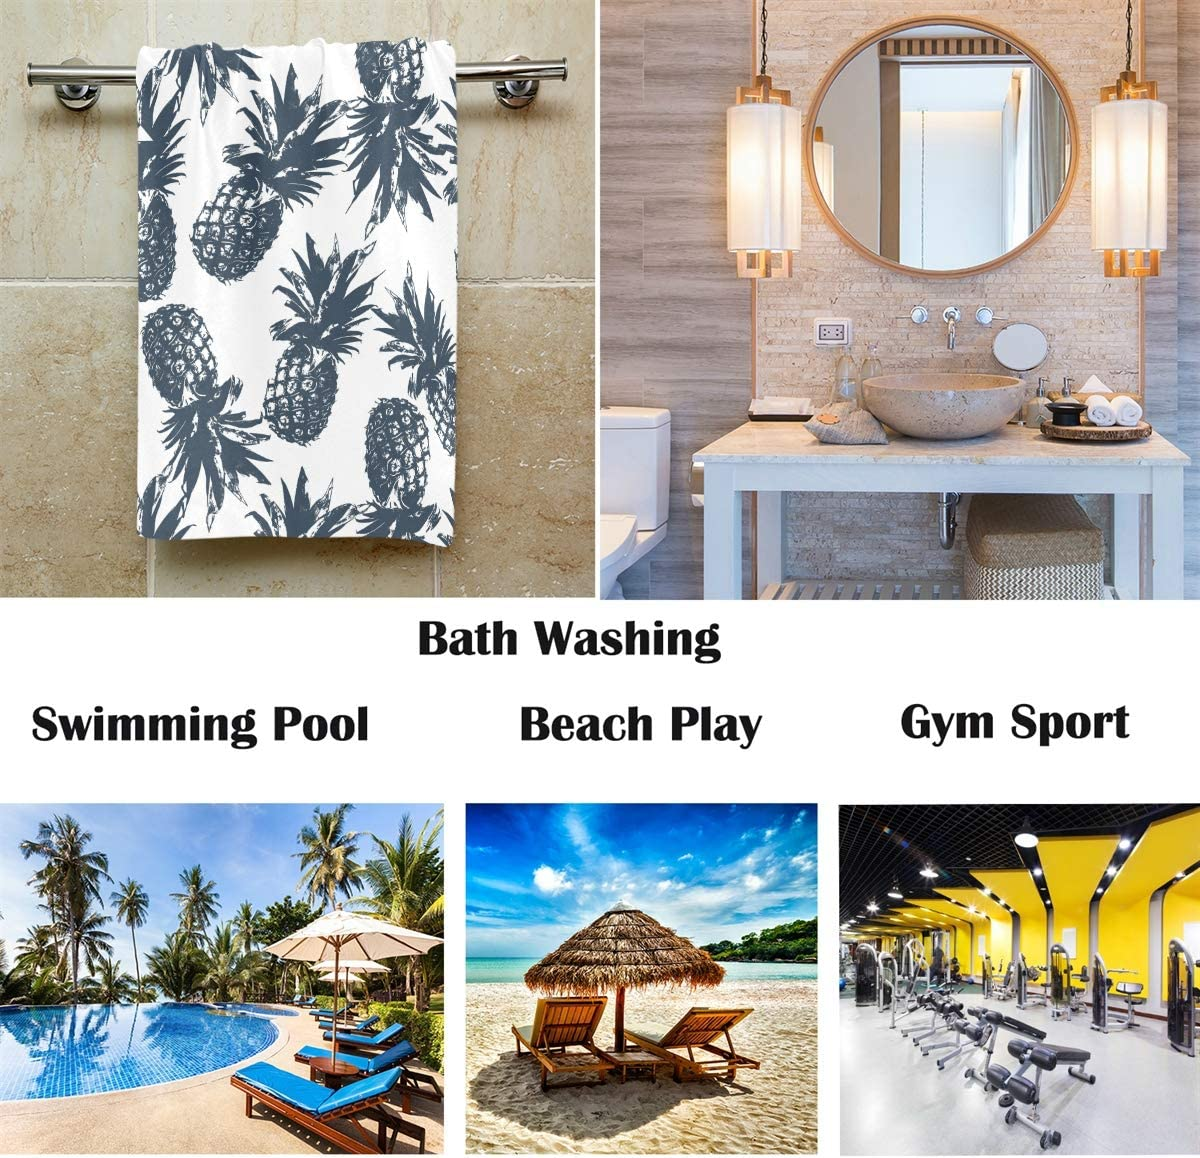 Ultra Soft Highly Absorbent Small Bath Towel Bathroom Decor African Girl Hand Towels 16x30 in Afro American Black Girls Listen Music Thin Bathroom Towel